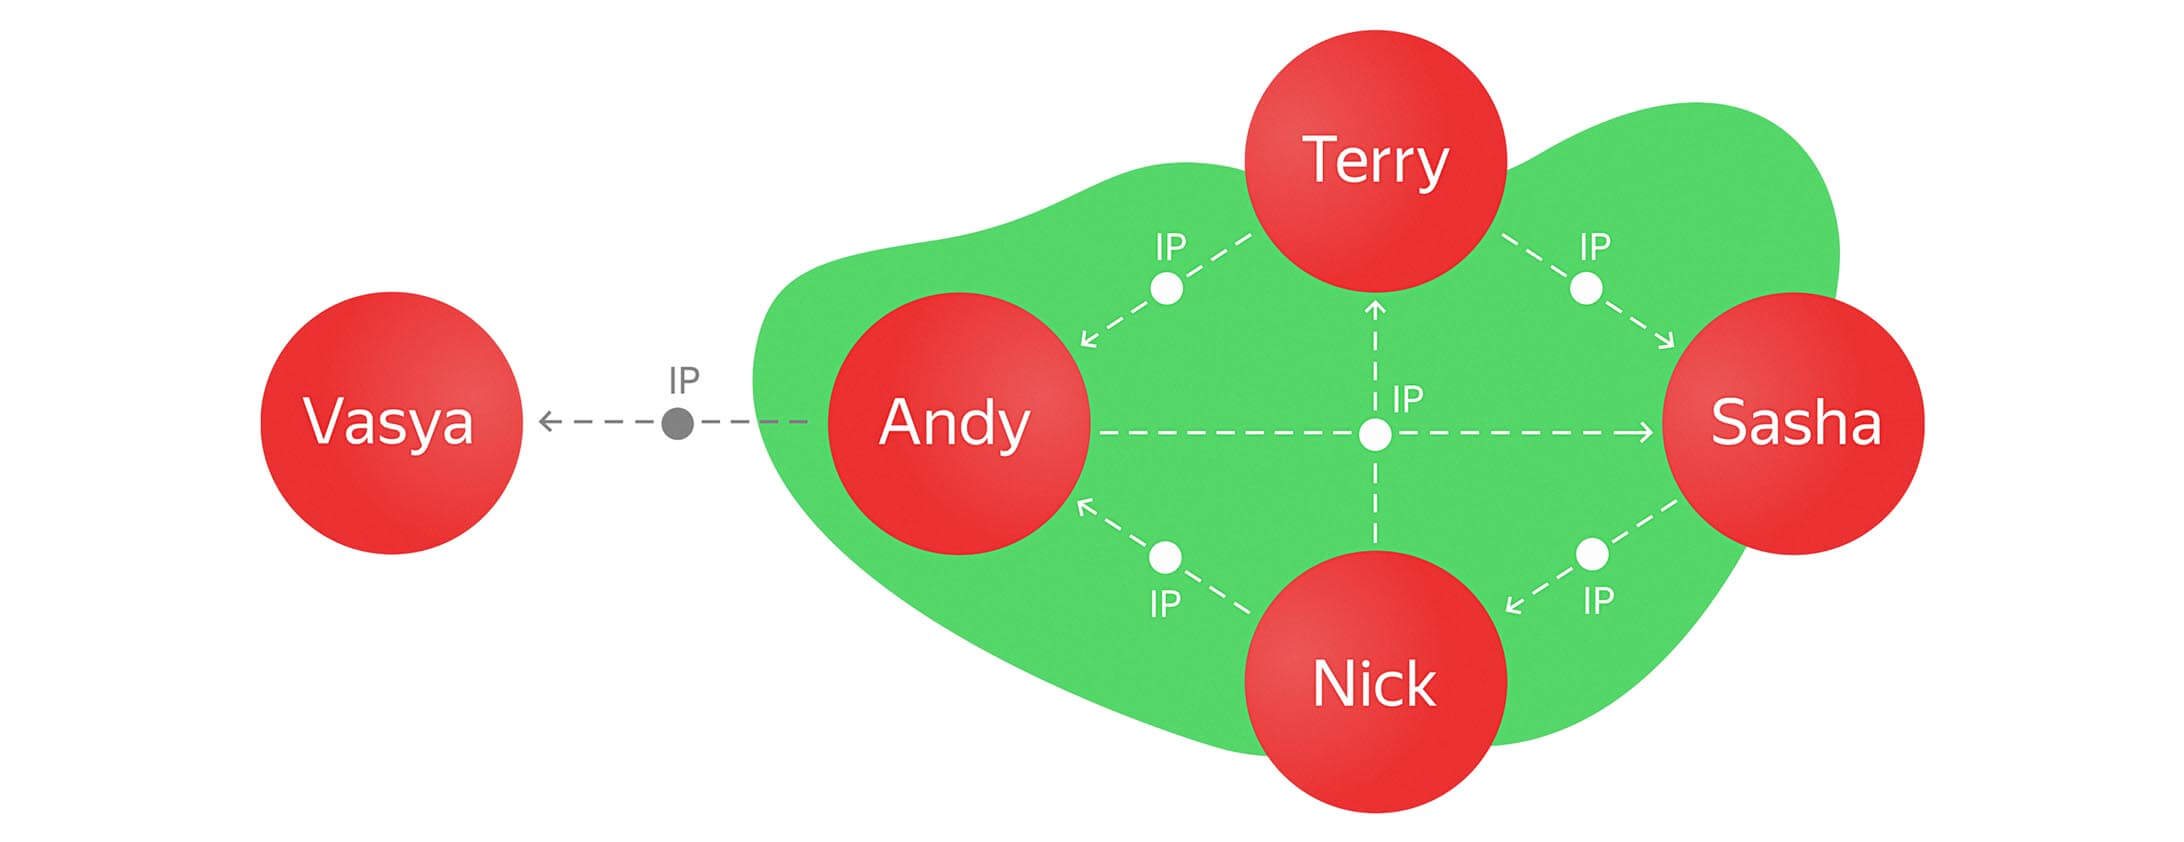 five-user-neo4j-graph.jpg